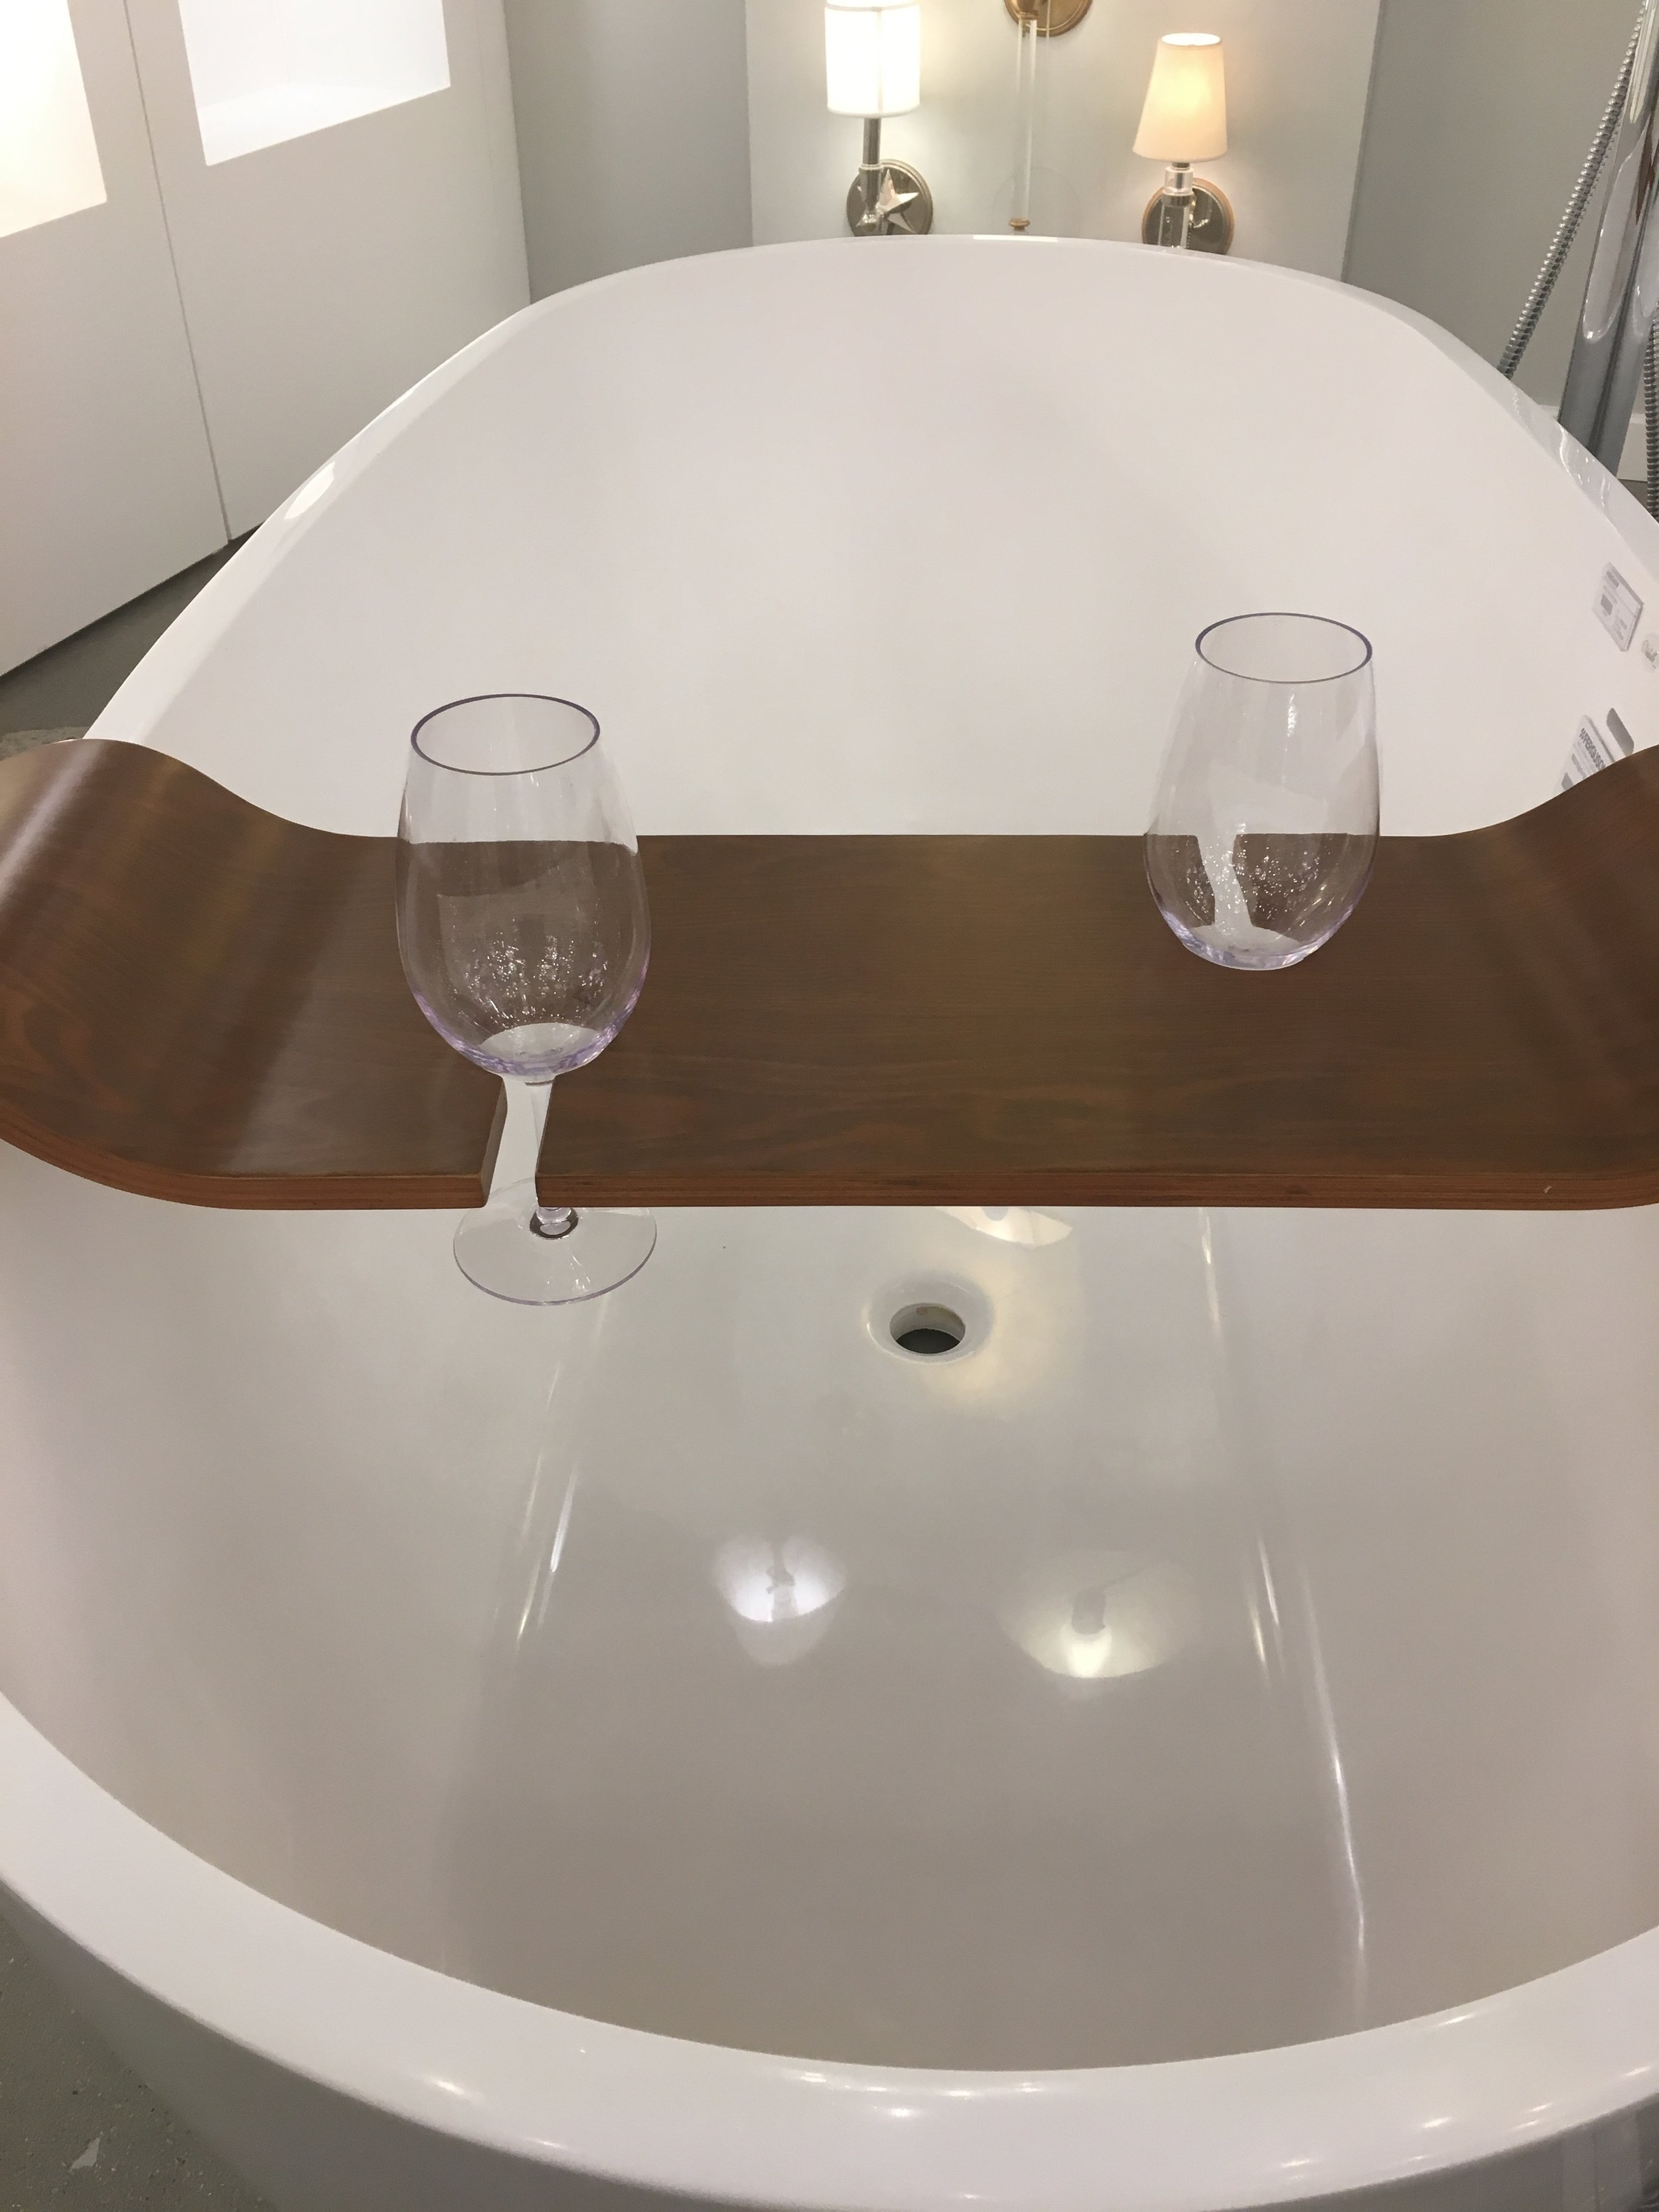 A bit of aspirational accessorizing with this bathtub wineglass holder…for two?!